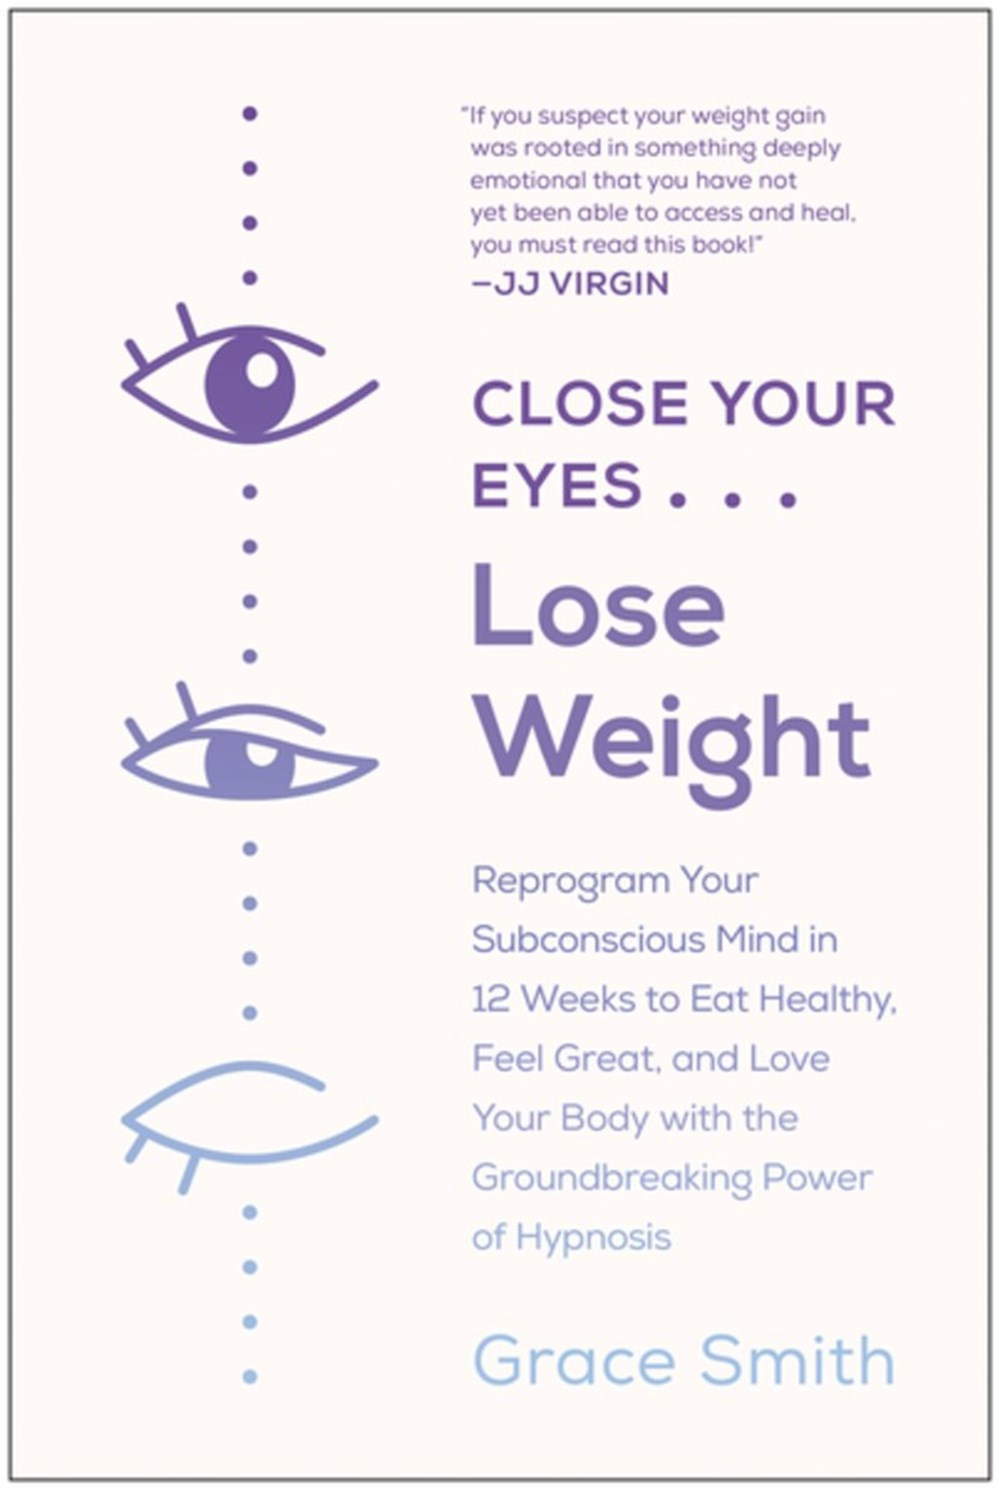 Close Your Eyes, Lose Weight Reprogram Your Subconscious Mind in 12 Weeks to Eat Healthy, Feel Great